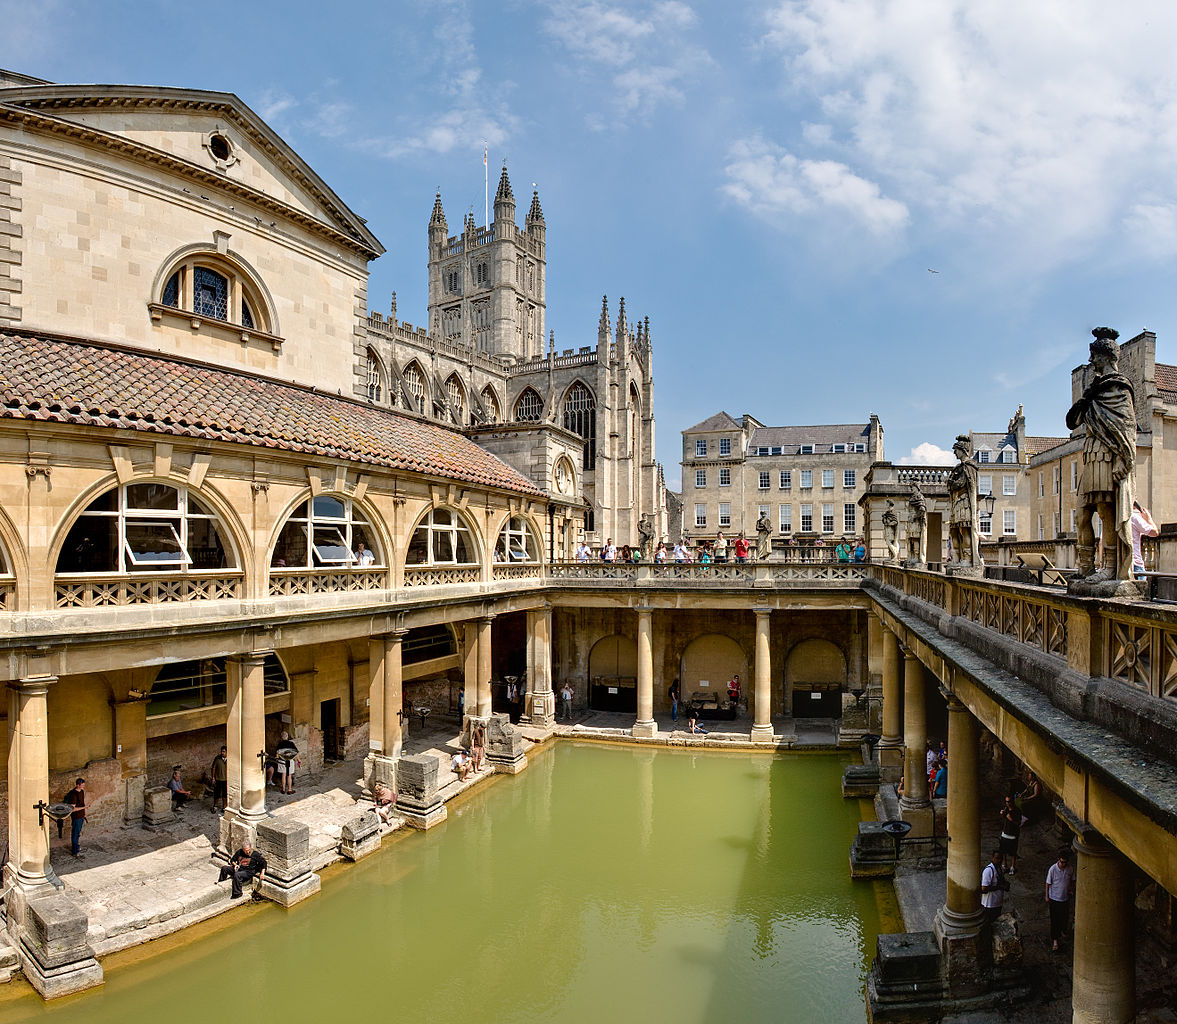 1177px-Roman_Baths_in_Bath_Spa,_England_-_July_2006